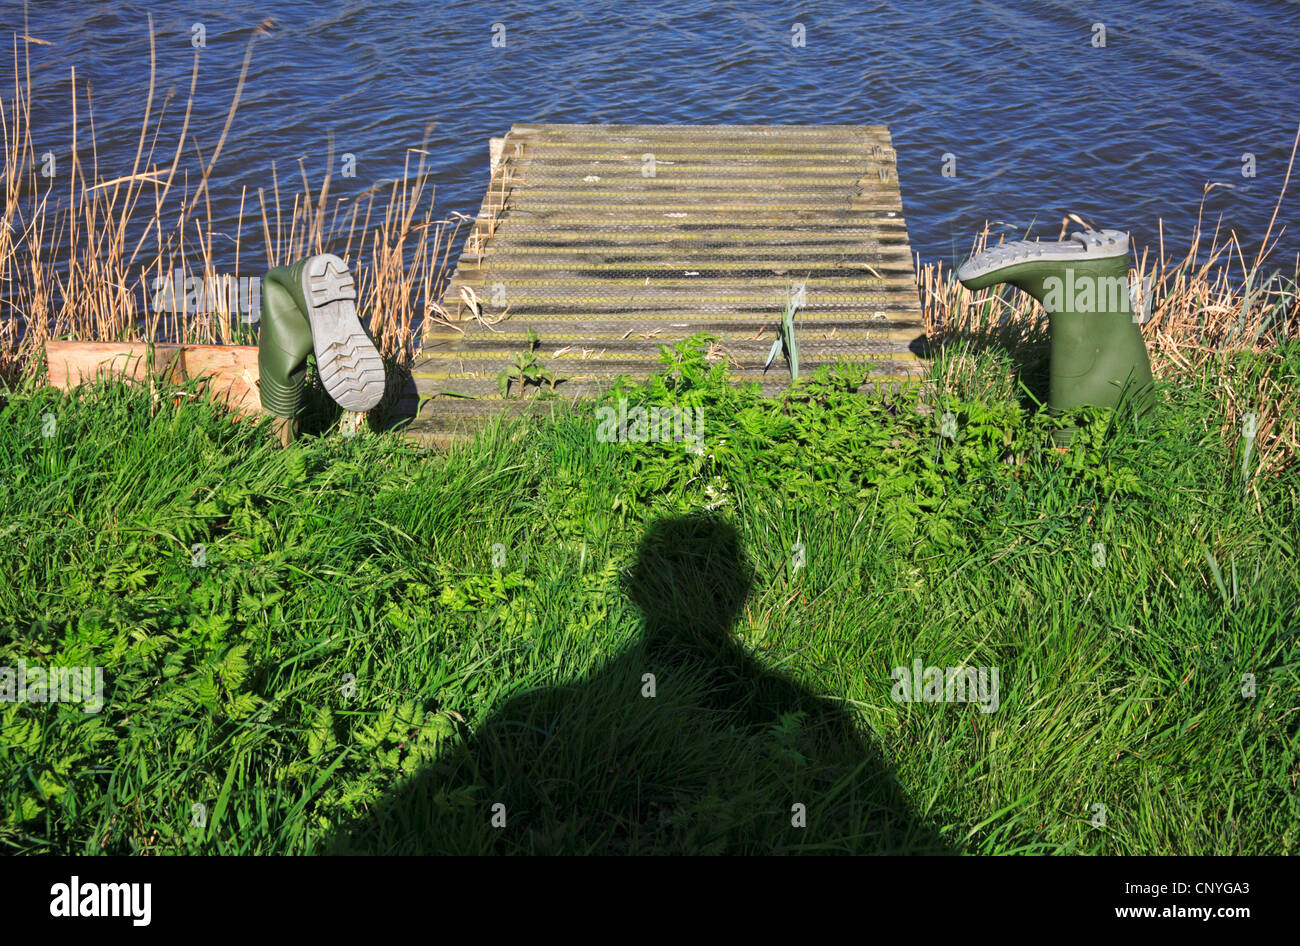 A pair of upturned water boots with a man's shadow on a river bank on the Norfolk Broads. - Stock Image